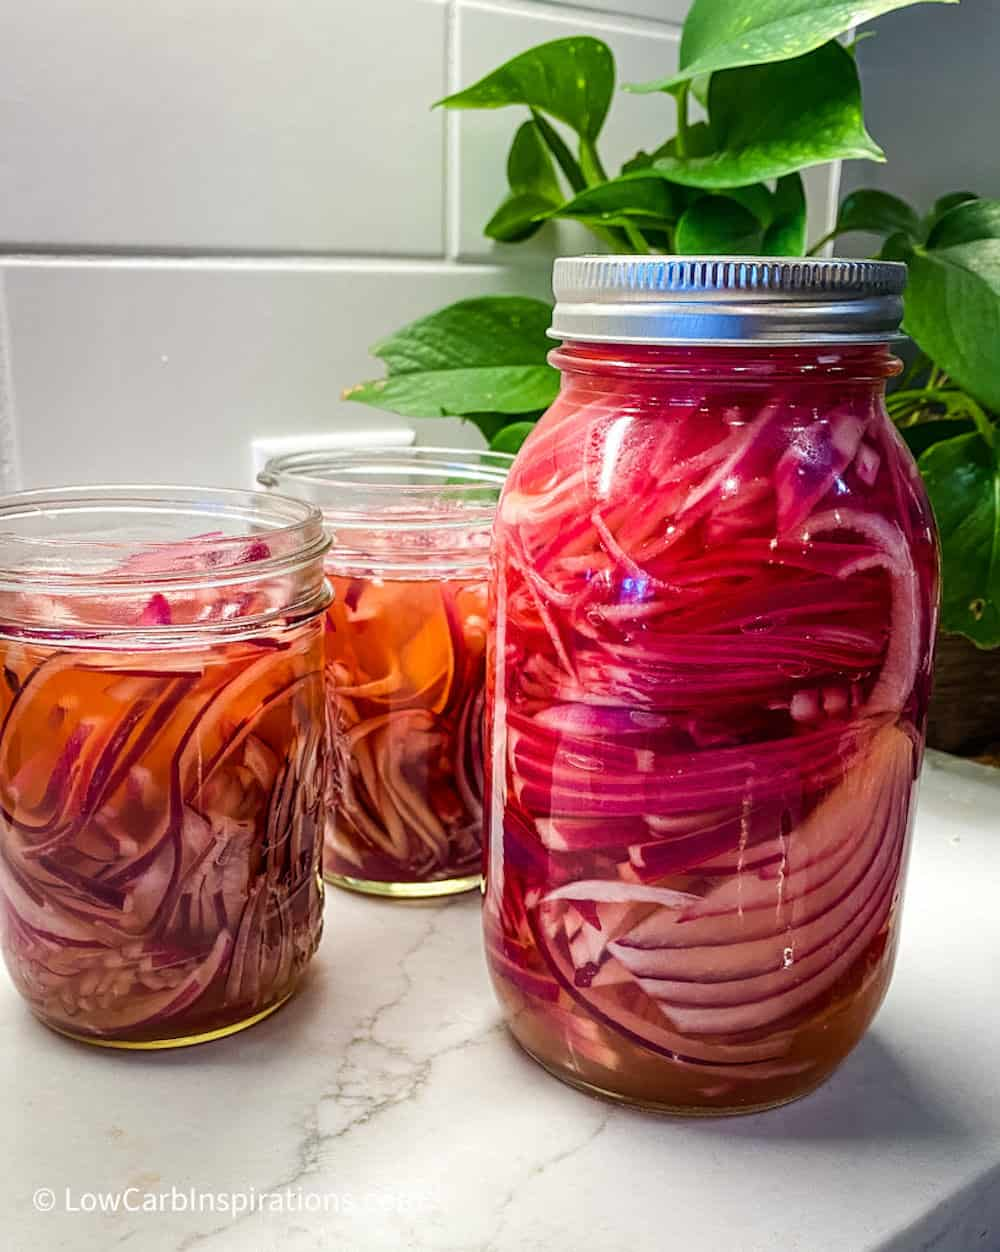 Jar with onions with a plant in the background